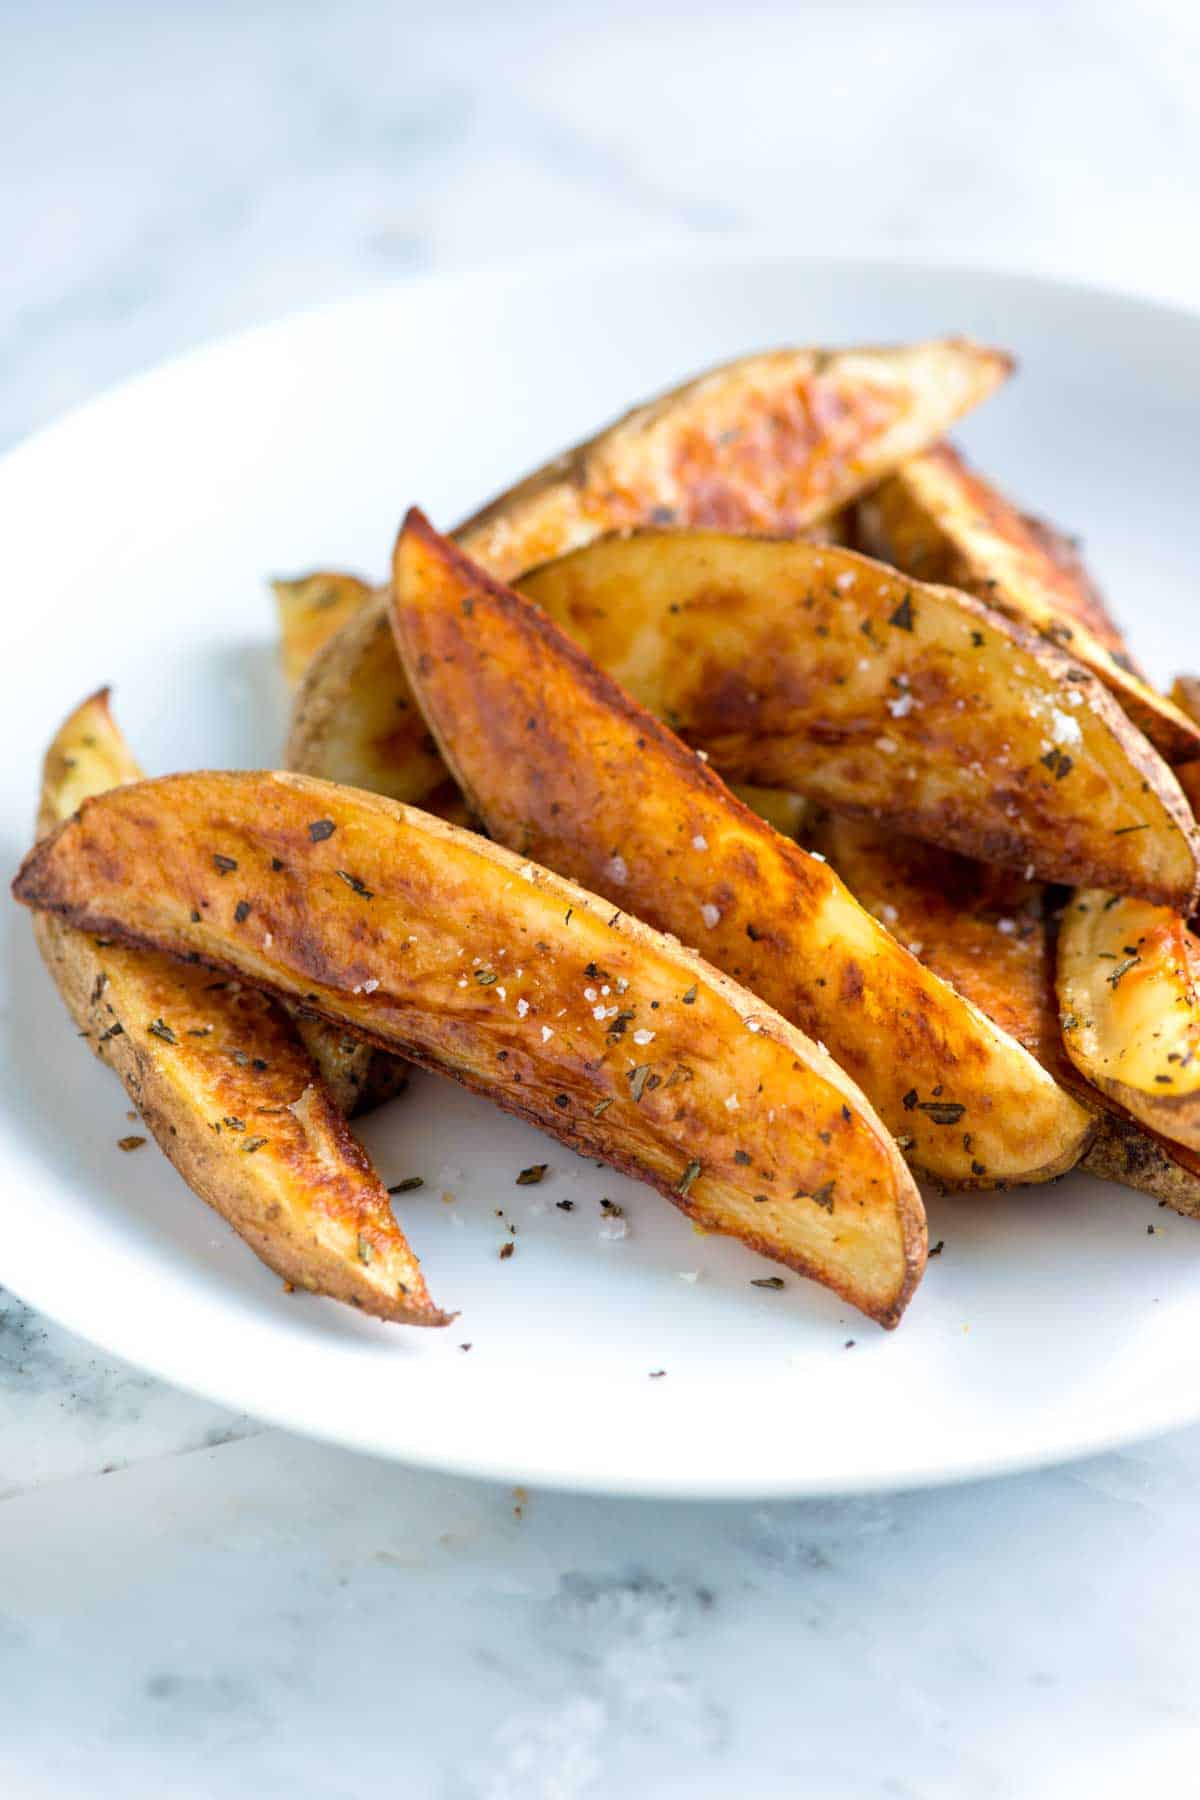 How To Make Roasted Potato Wedges So They Don't Stick - Rosemary Baked Potato Wedges Recipe